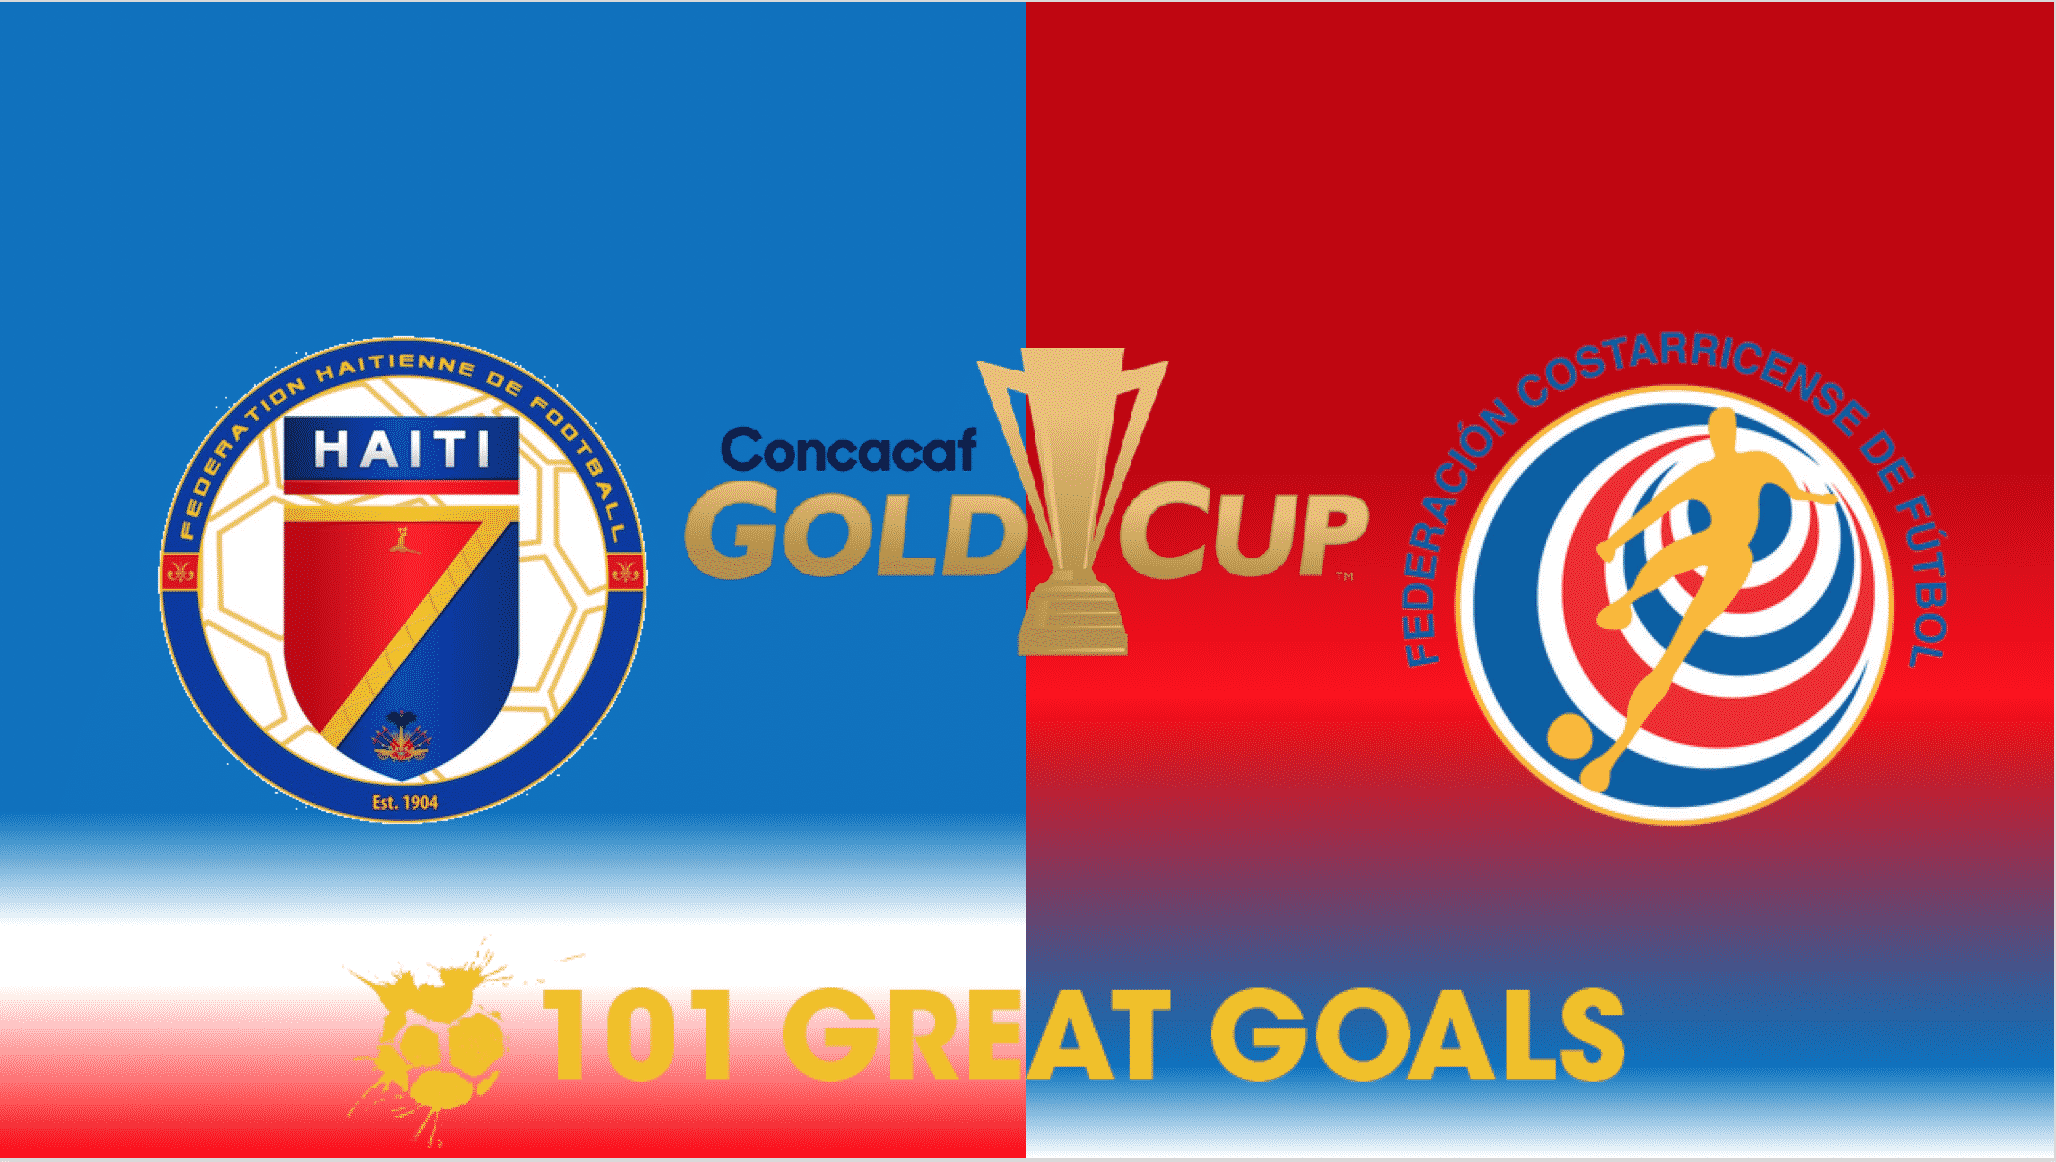 Haiti vs Costa Rica live streaming